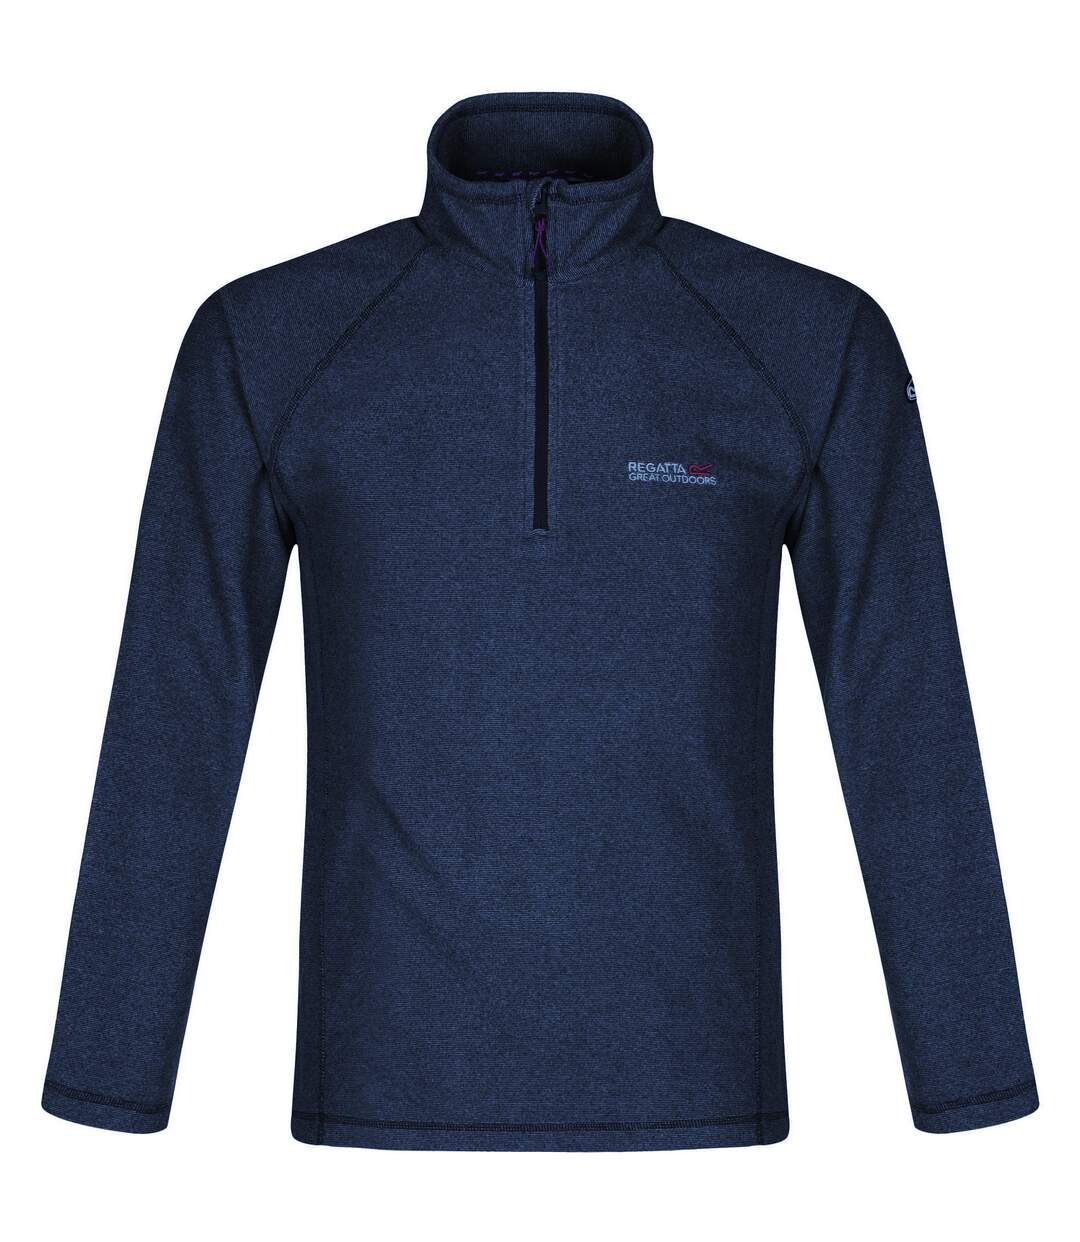 Regatta Great Outdoors Mens Montes Half Zip Fleece Jacket (Navy) - UTRG1898